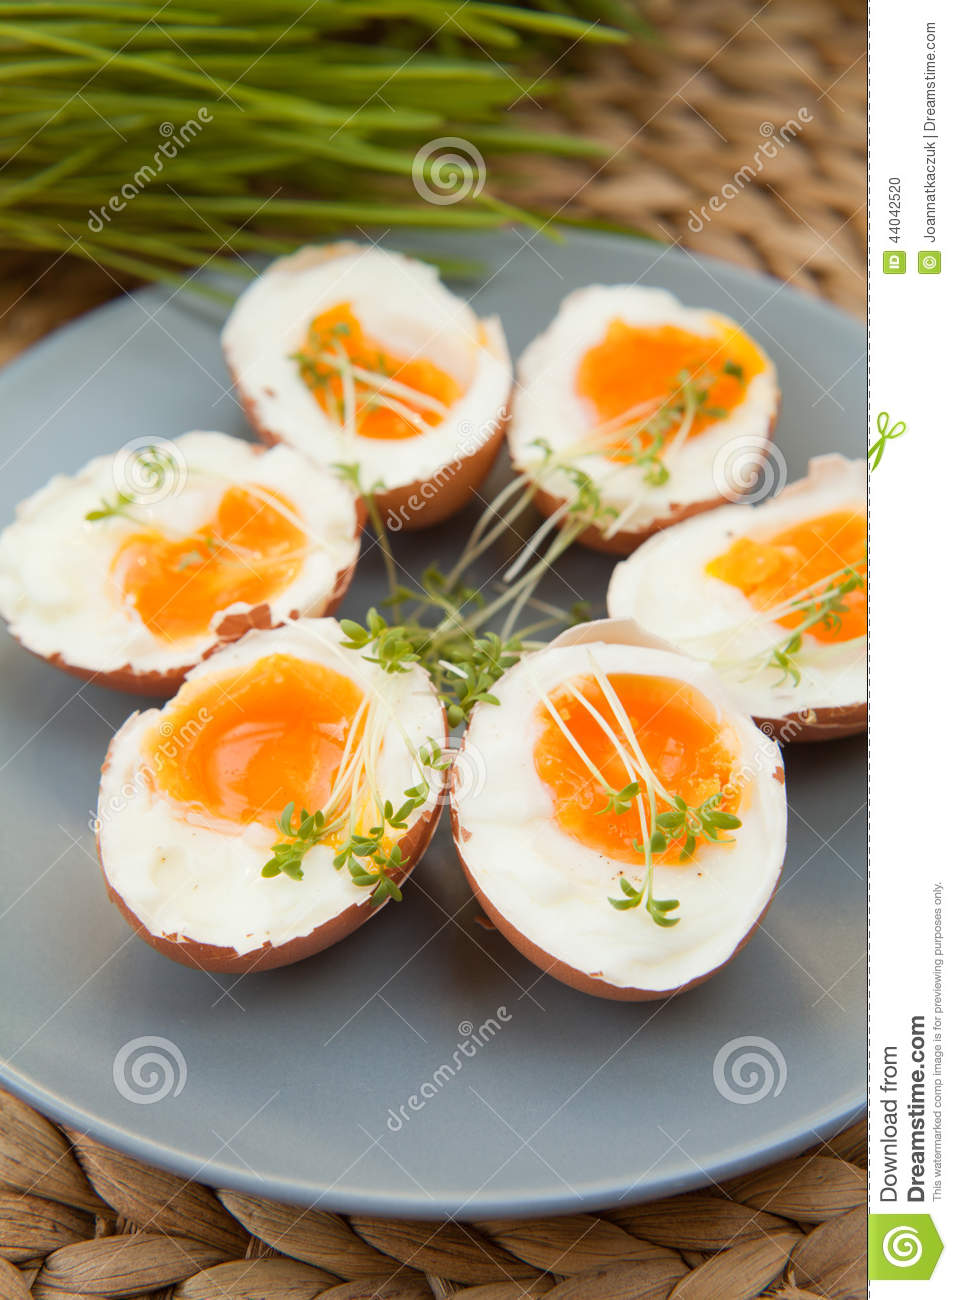 Hard Boiled Eggs Stock Photo Image Of Cress Whole 44042520